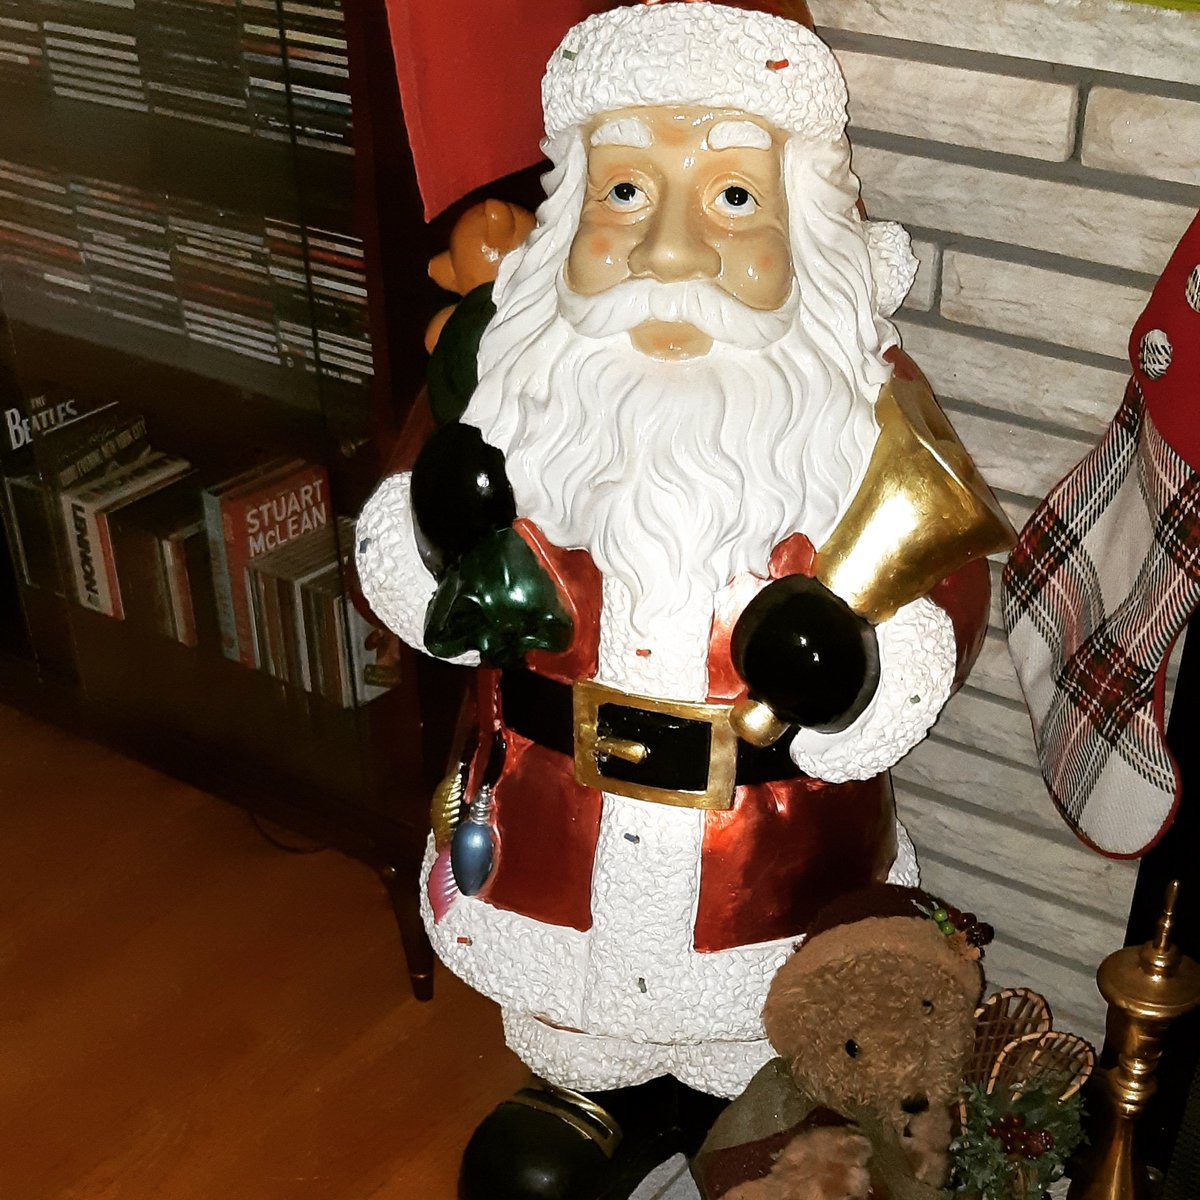 Our 40 inch tall, motion activated light up and musical Santa Claus find from 2020 #christmas #santaclaus https://t.co/cddbeA4o1e